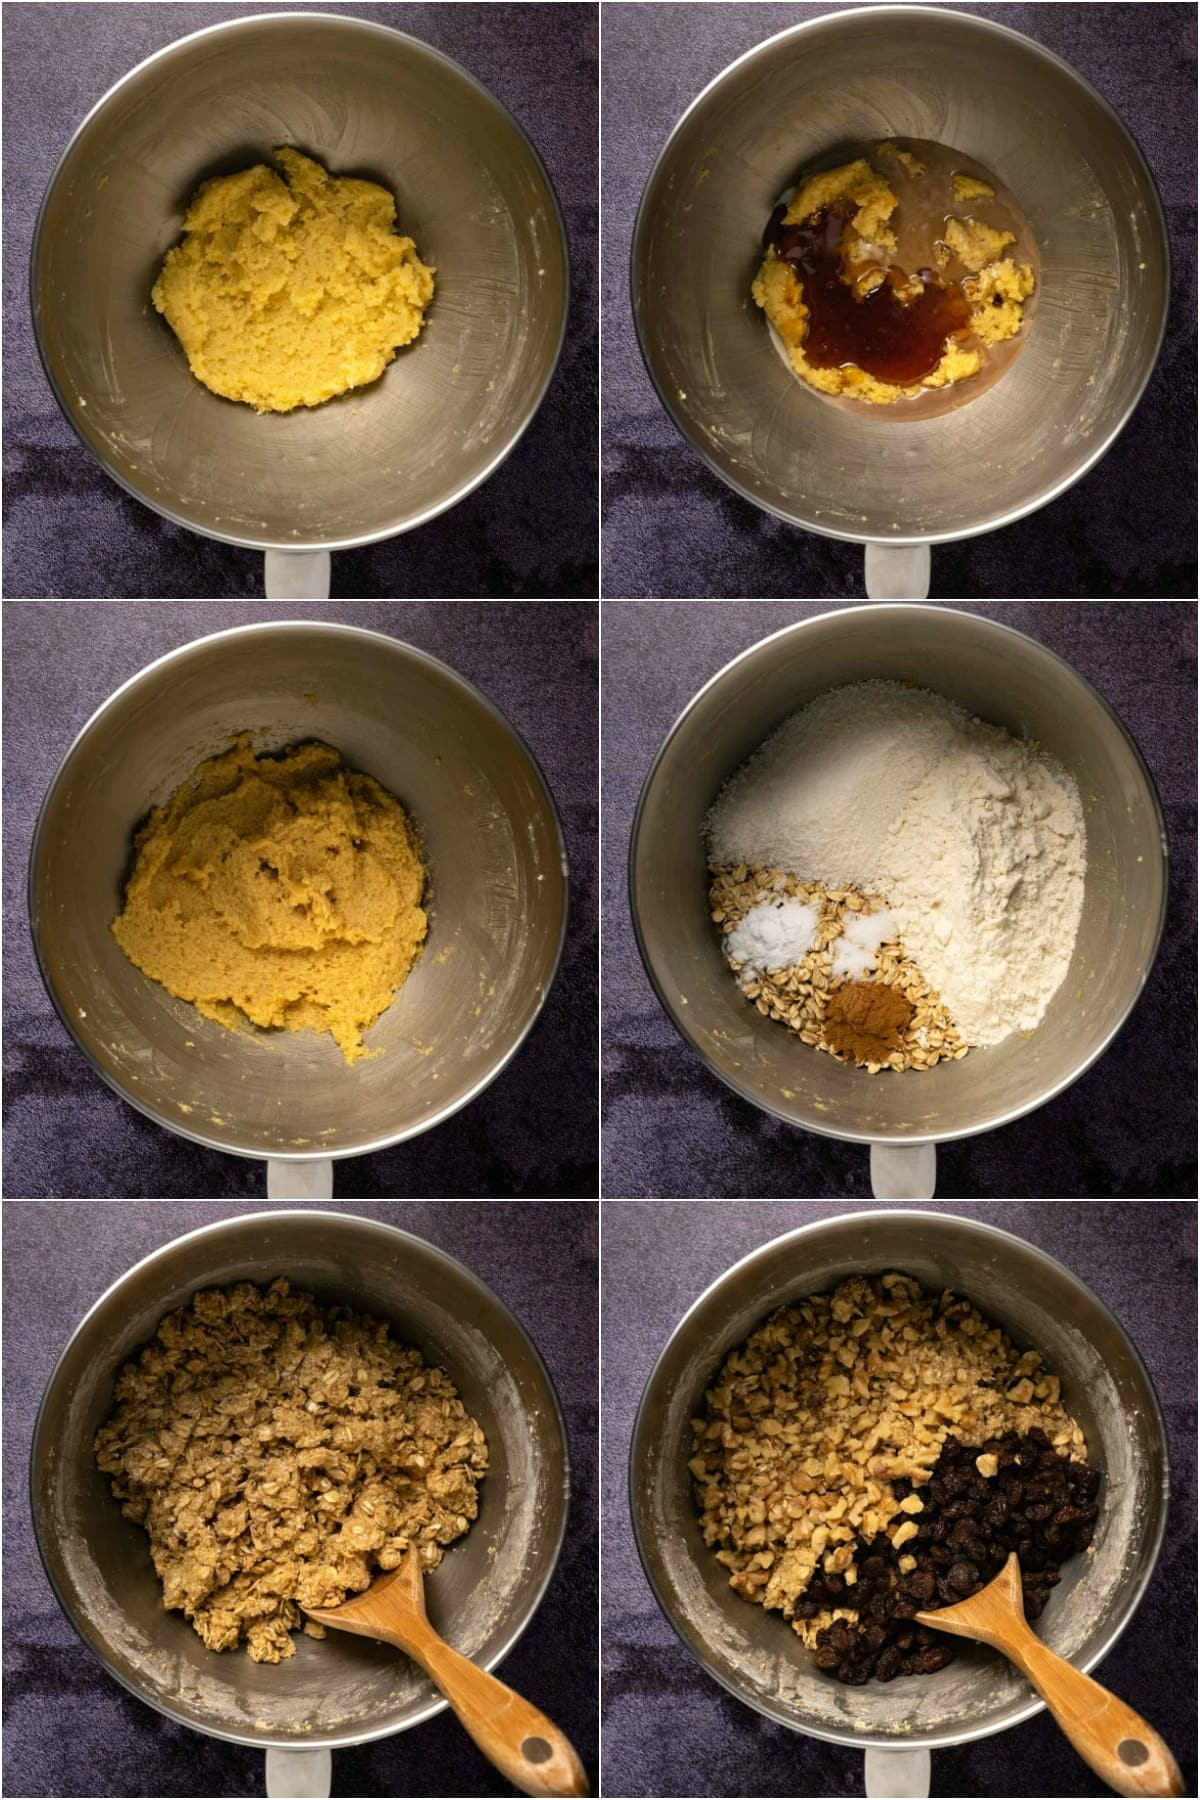 Step by step process photo collage of making the cookie dough for oatmeal raisin cookies.